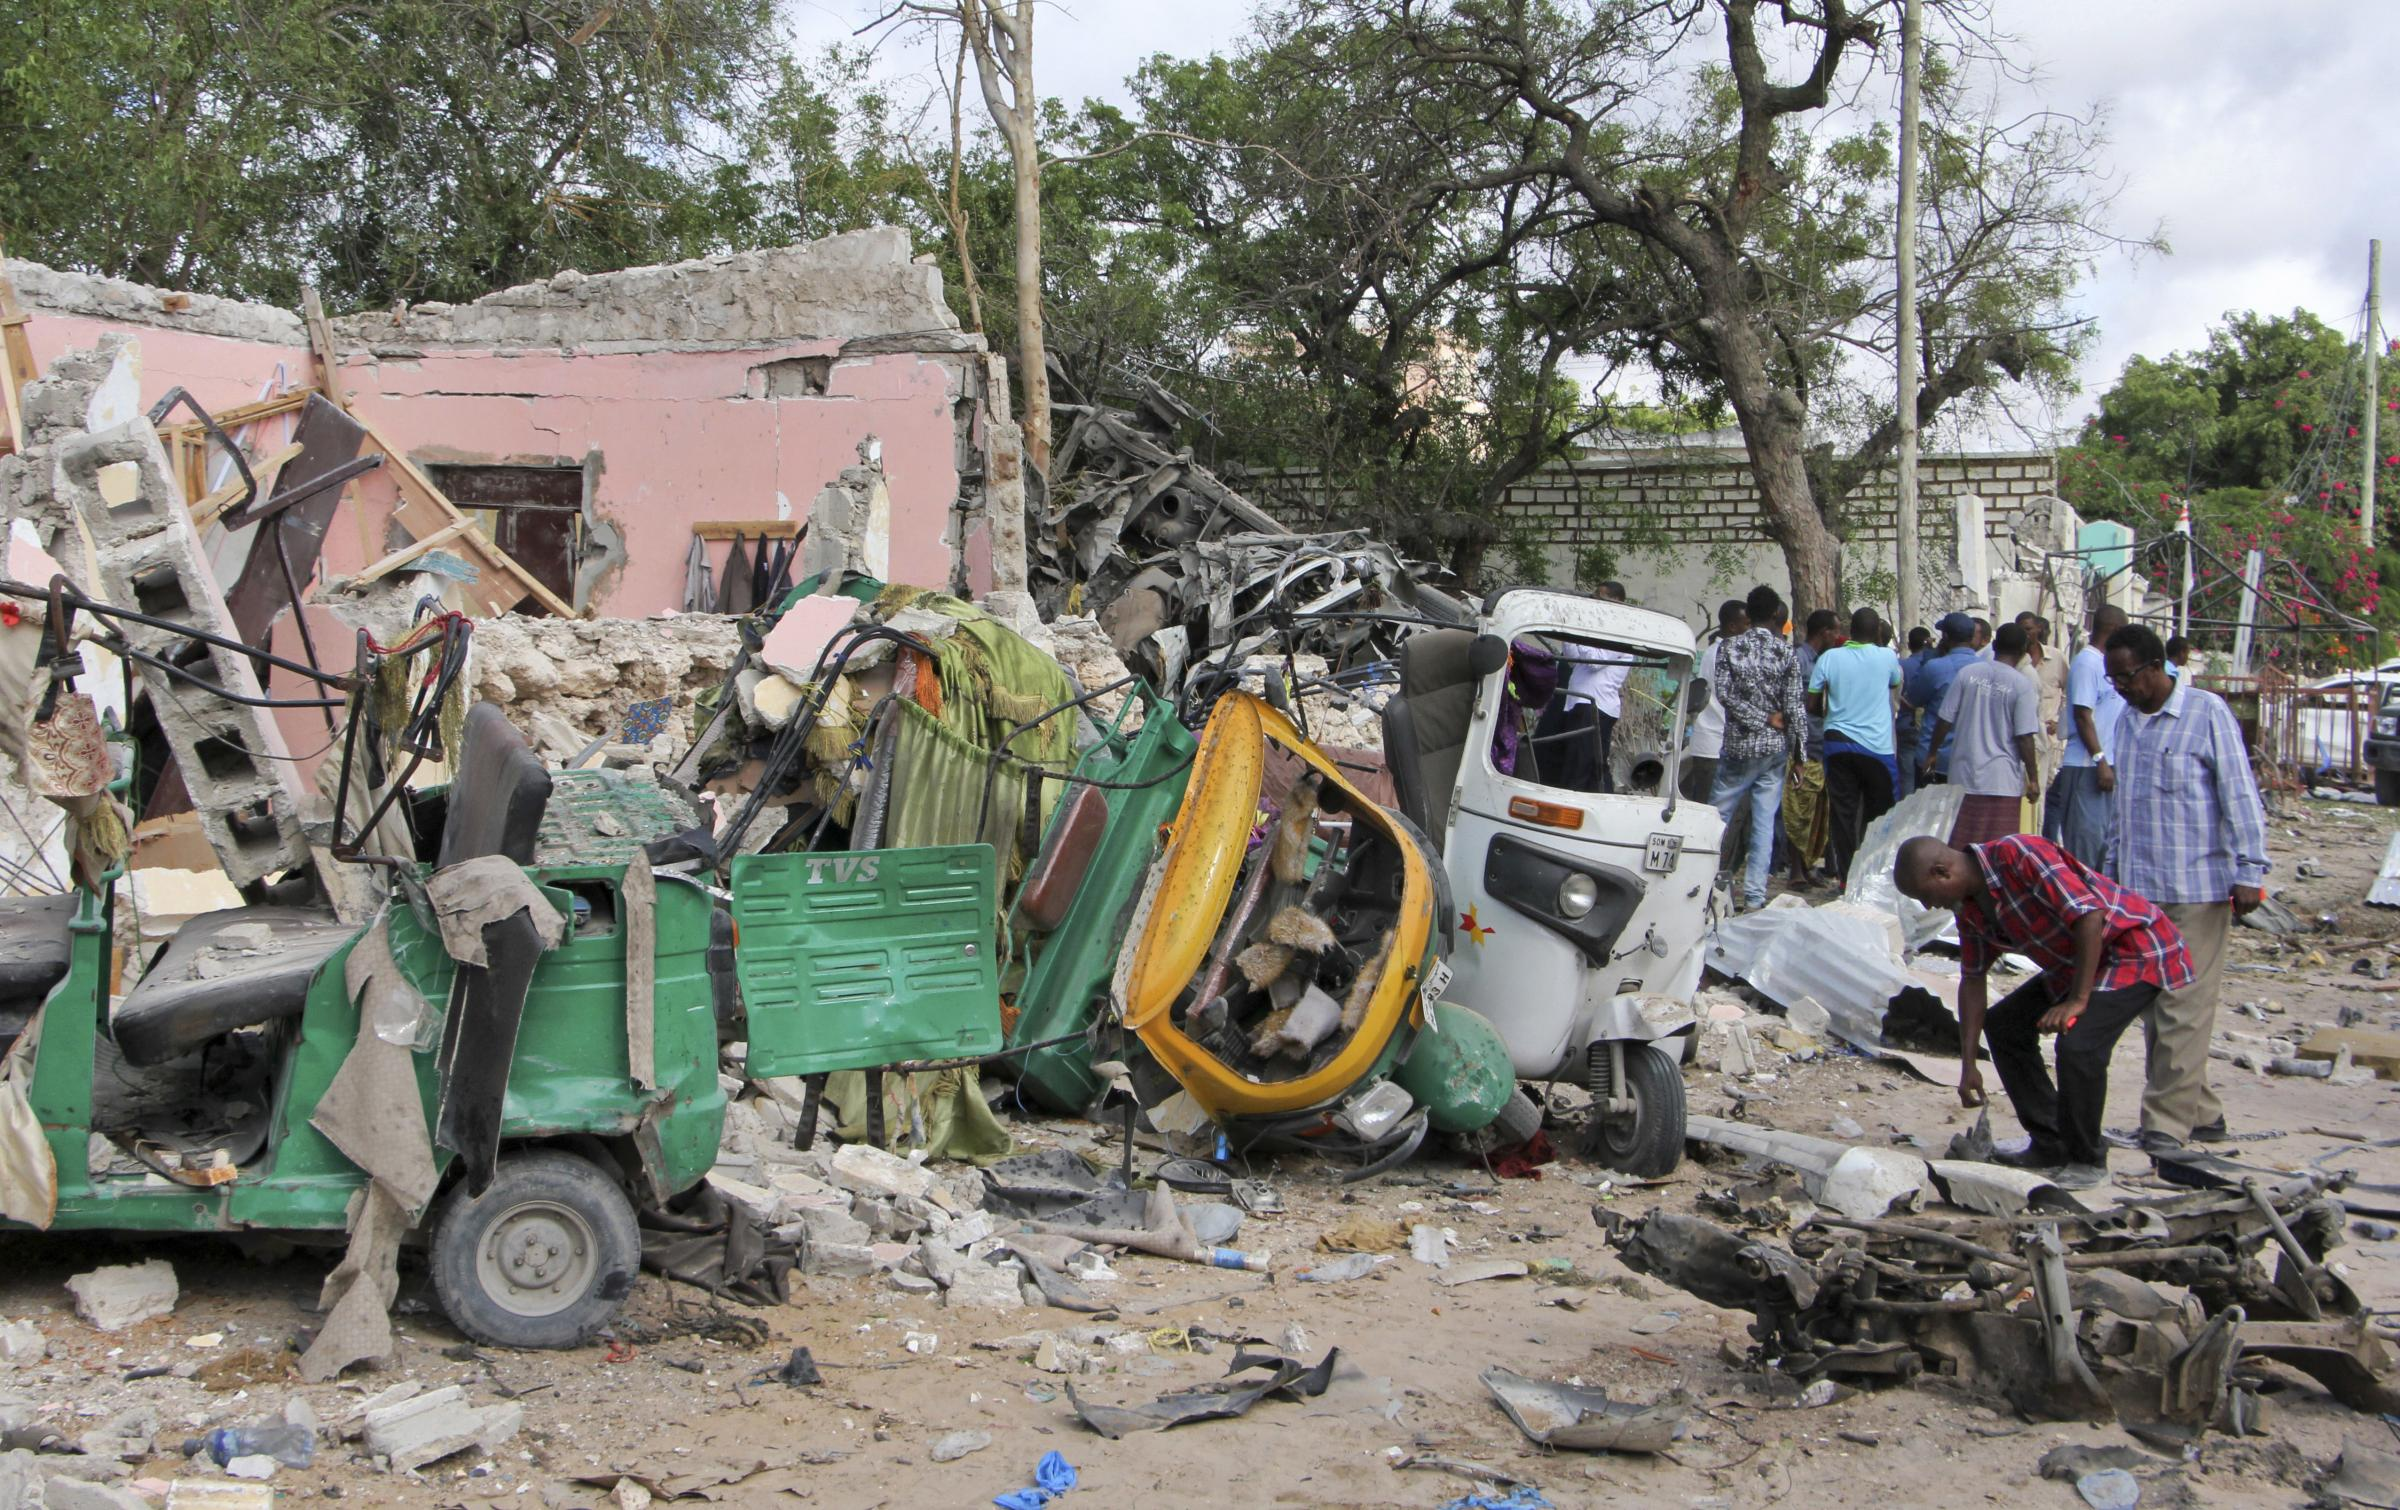 Terrorist Attack in Somalia Kills 19 in Mogadishu Hotel, Restaurant